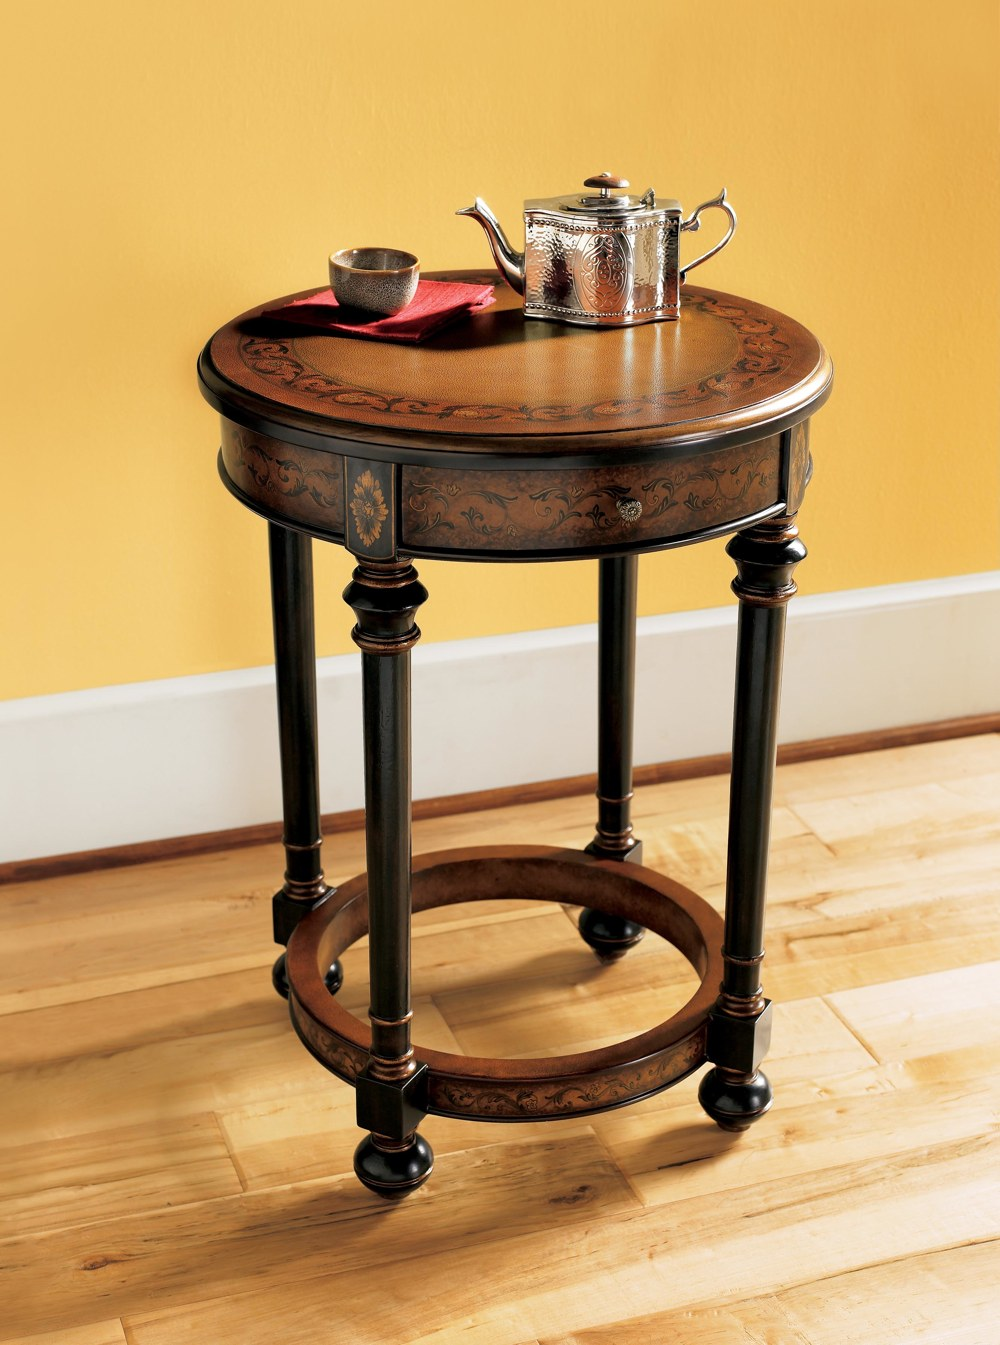 Wonderful All Wood Accent Table; The Design Has A Round Top, Straight Turned Legs  That Are Attached To A Decorated Circular Support Finished At The Bottom  With Bun ...